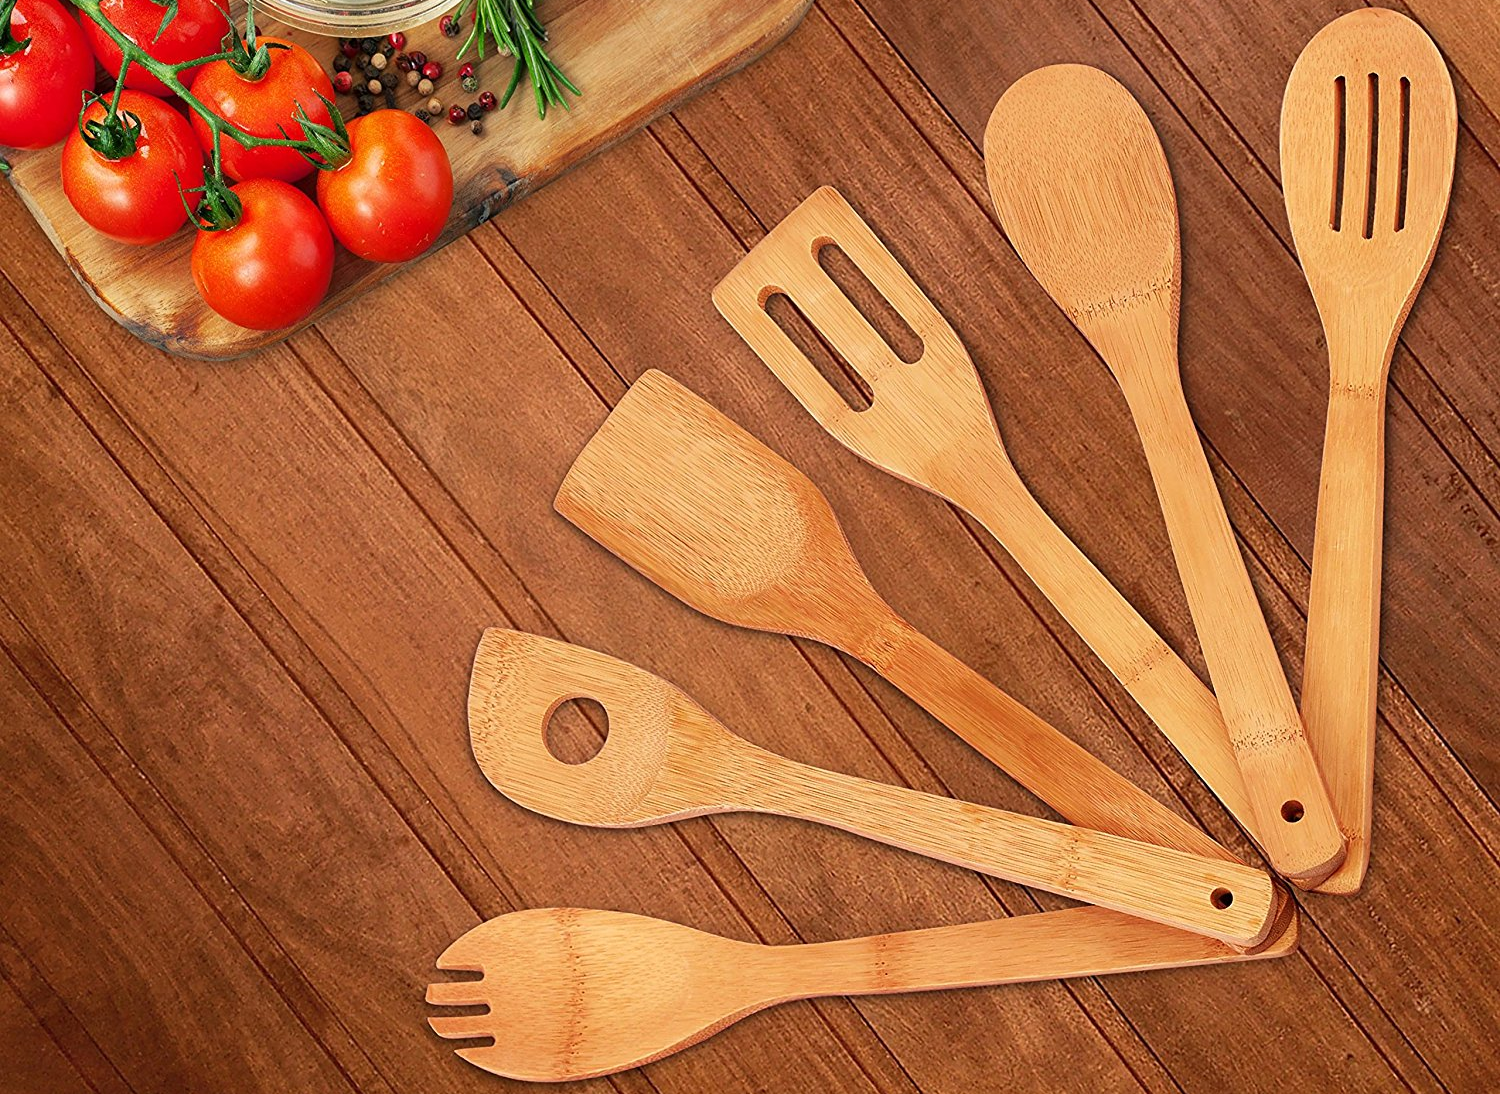 Best kitchen utensil set - I Love My Bamboo Cooking Utensils They Re Probably One Of The Best Kitchen Purchases I Ve Made If You Want To Pick Up A Set Of Your Own